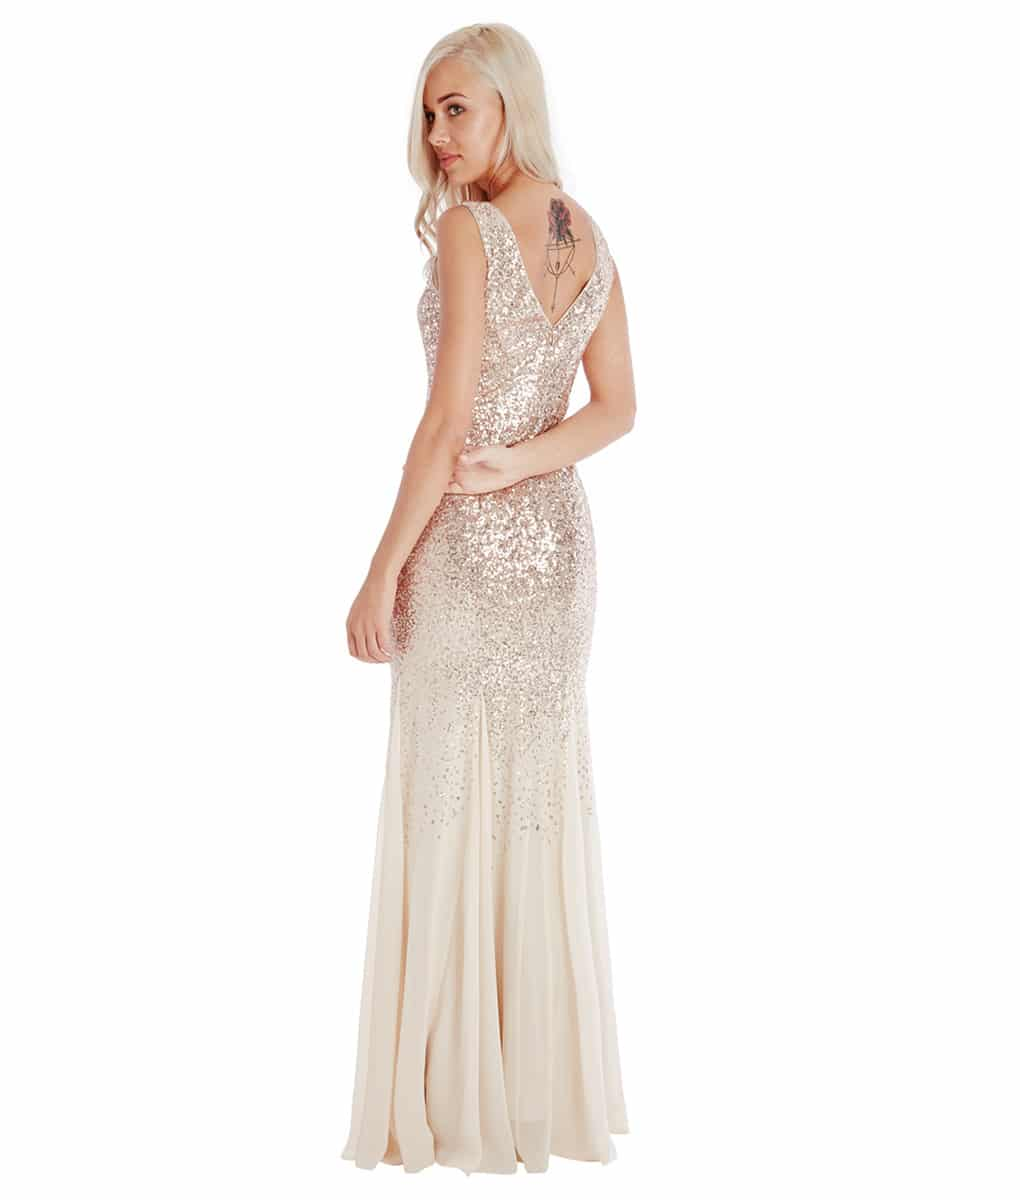 Dressing Gowns Uk: City Goddess - Champagne Sequins & Chiffon Gown